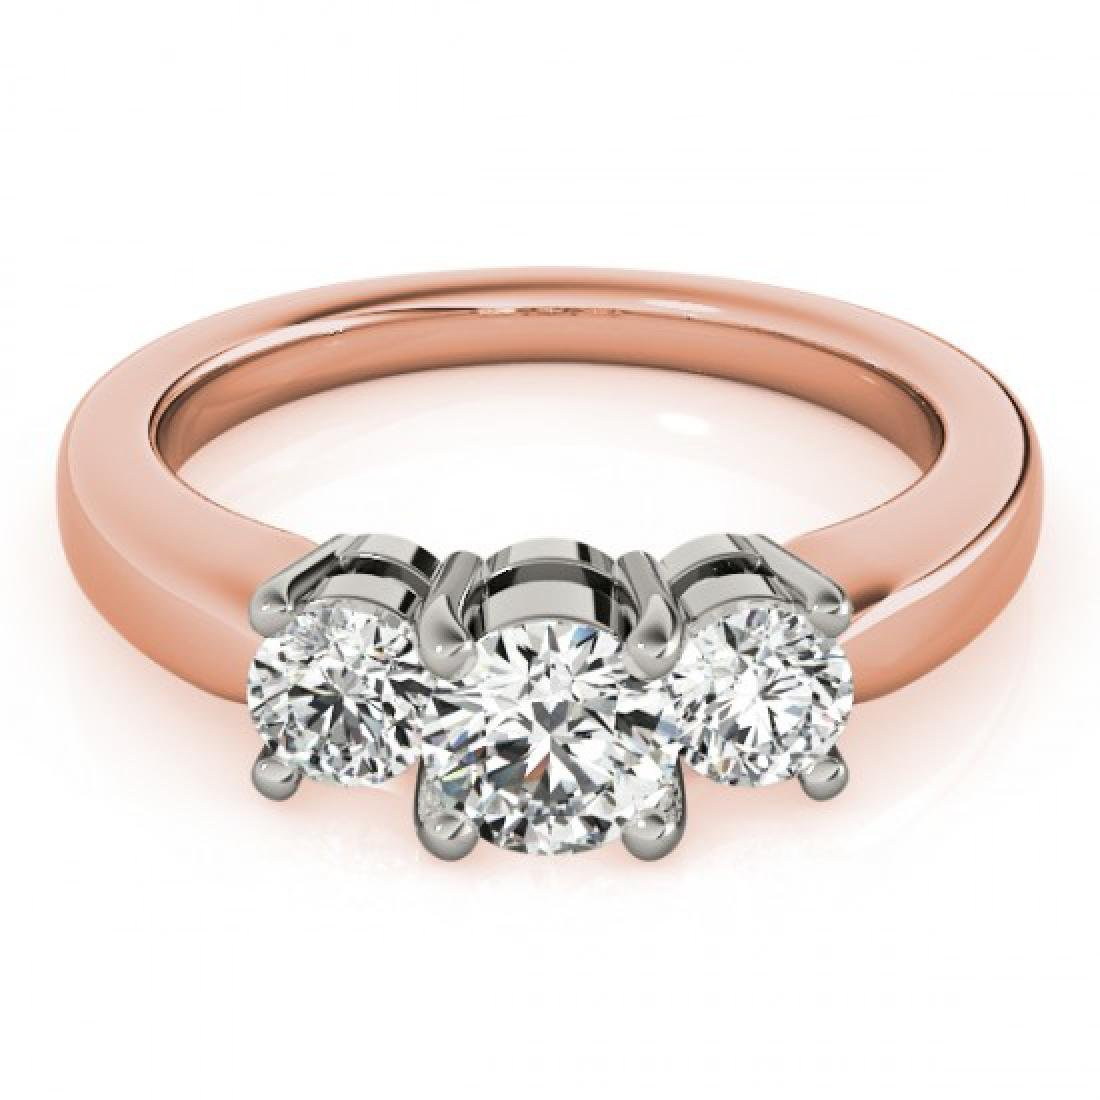 1.33 CTW Certified VS/SI Diamond 3 Stone Ring 14K Rose